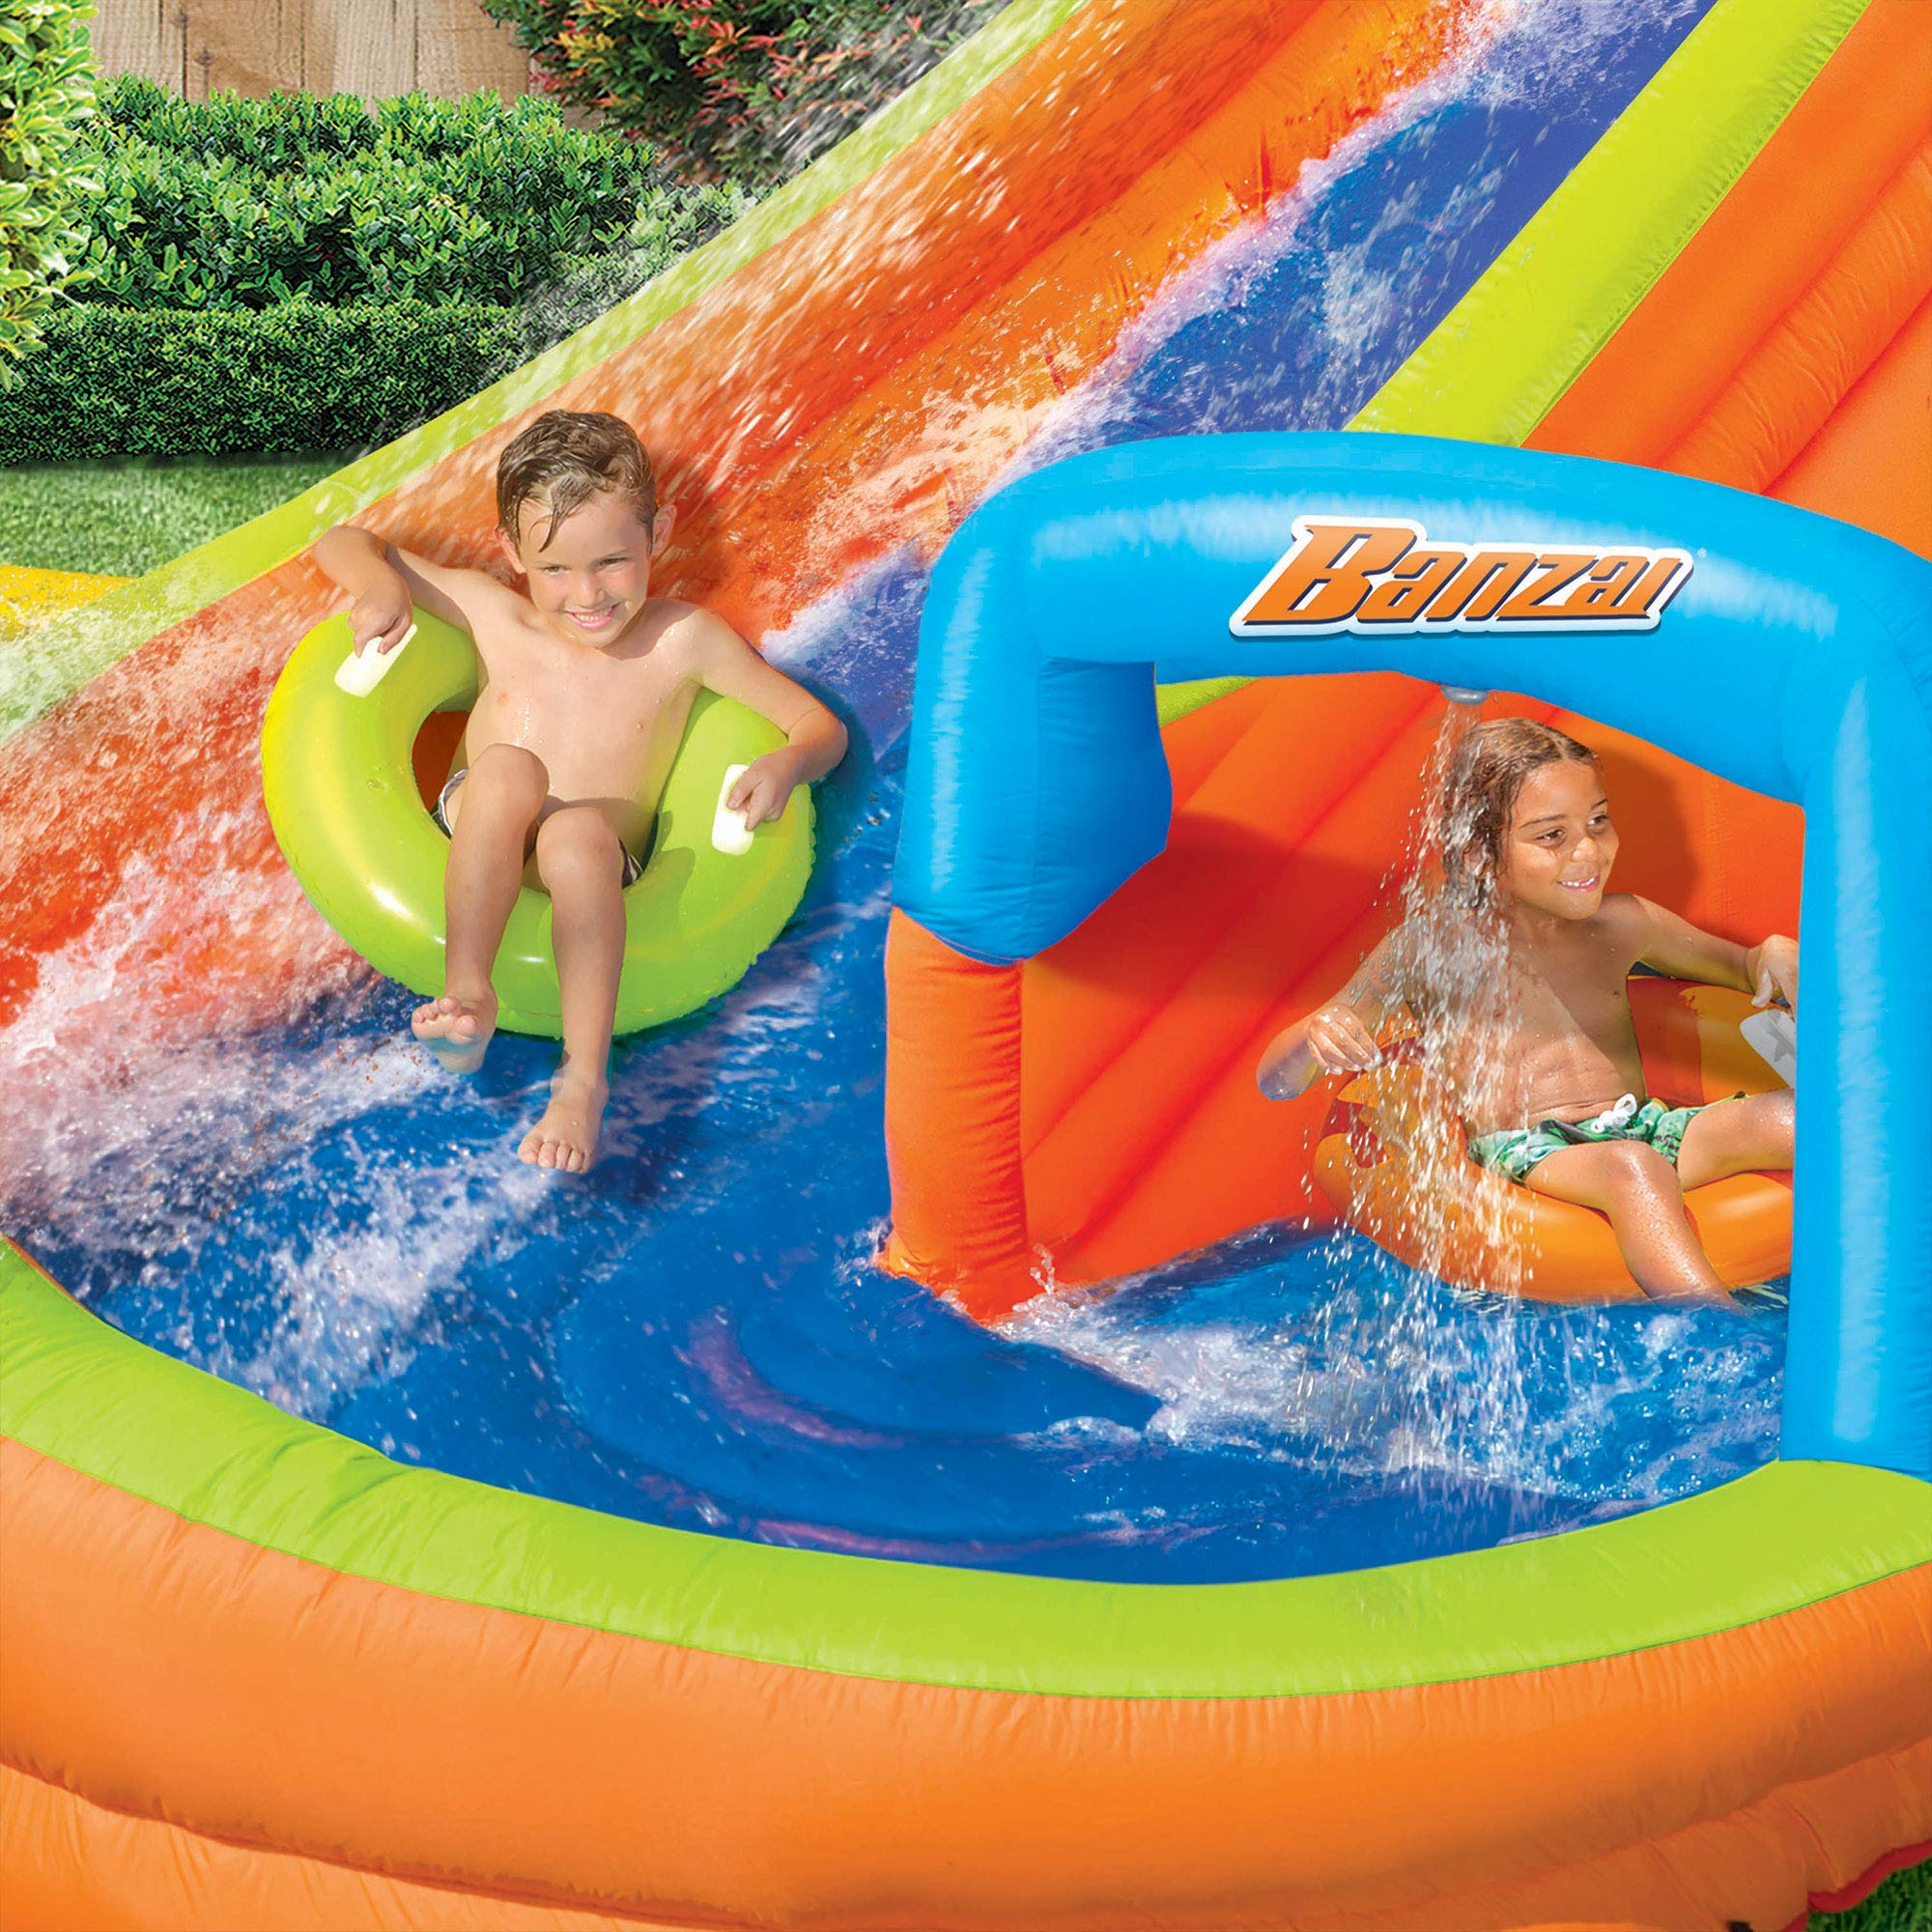 BANZAI Lazy River Inflatable Outdoor Adventure Water Park Slide and Splash Pool by BANZAI (Image #5)